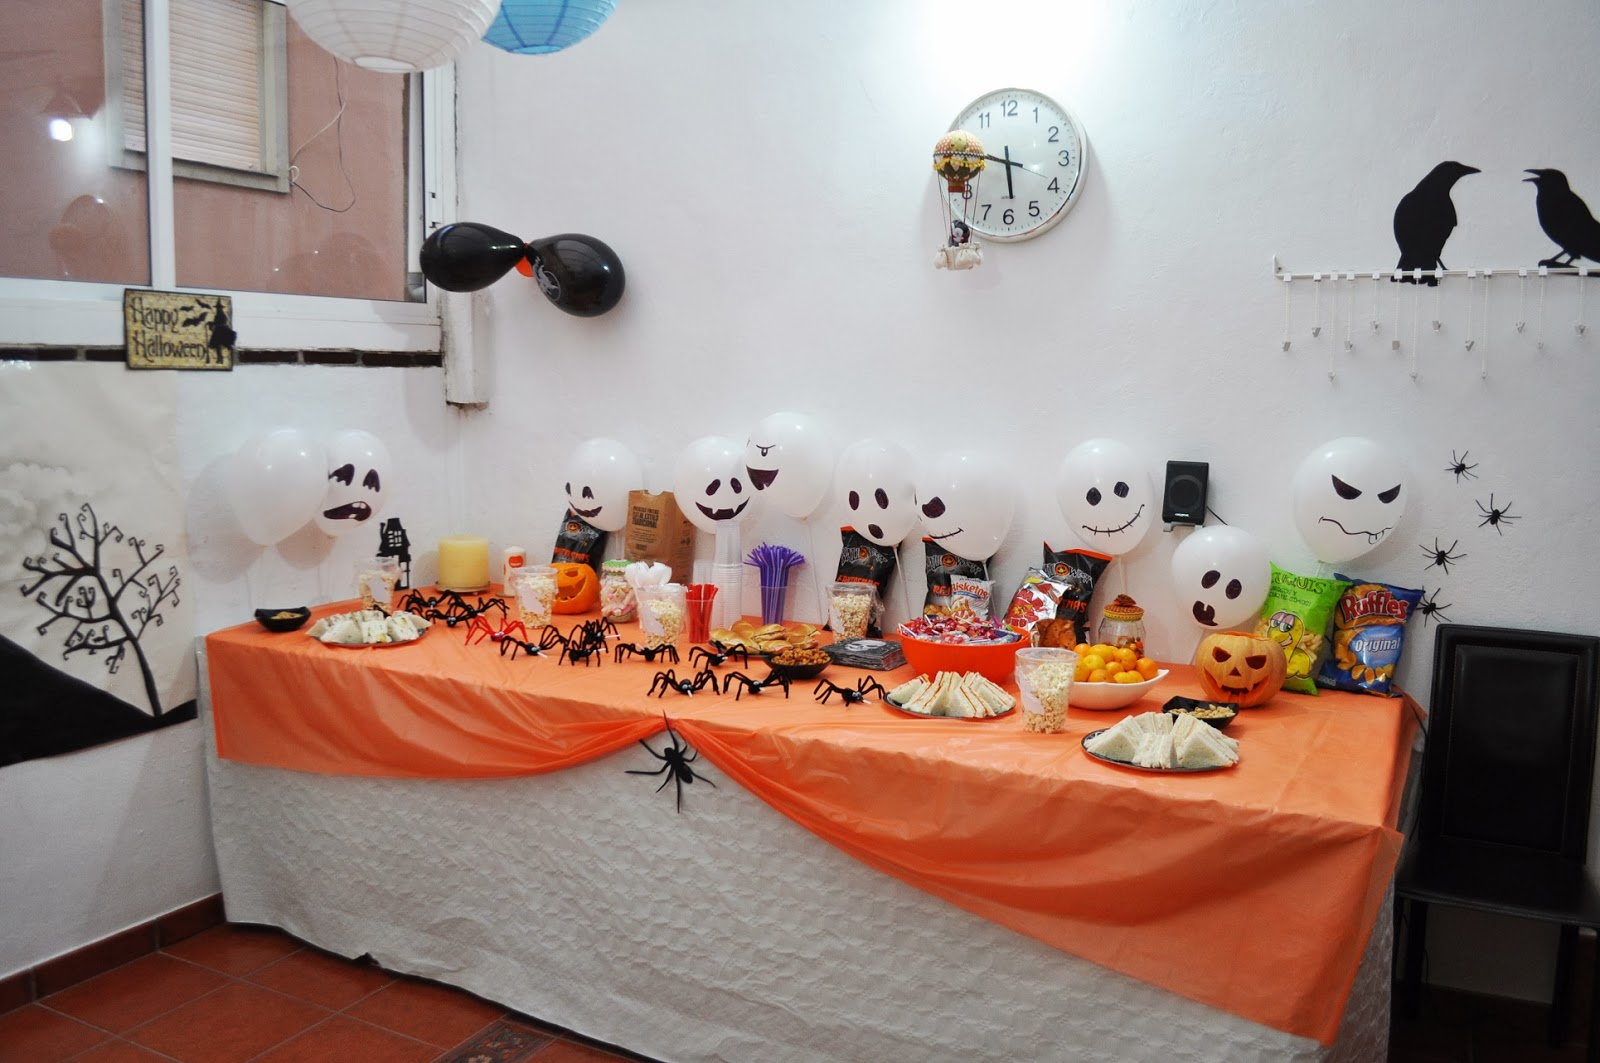 El caj n del scrap ideas juegos y decoraci n para - Decoracion de halloween para fiestas ...